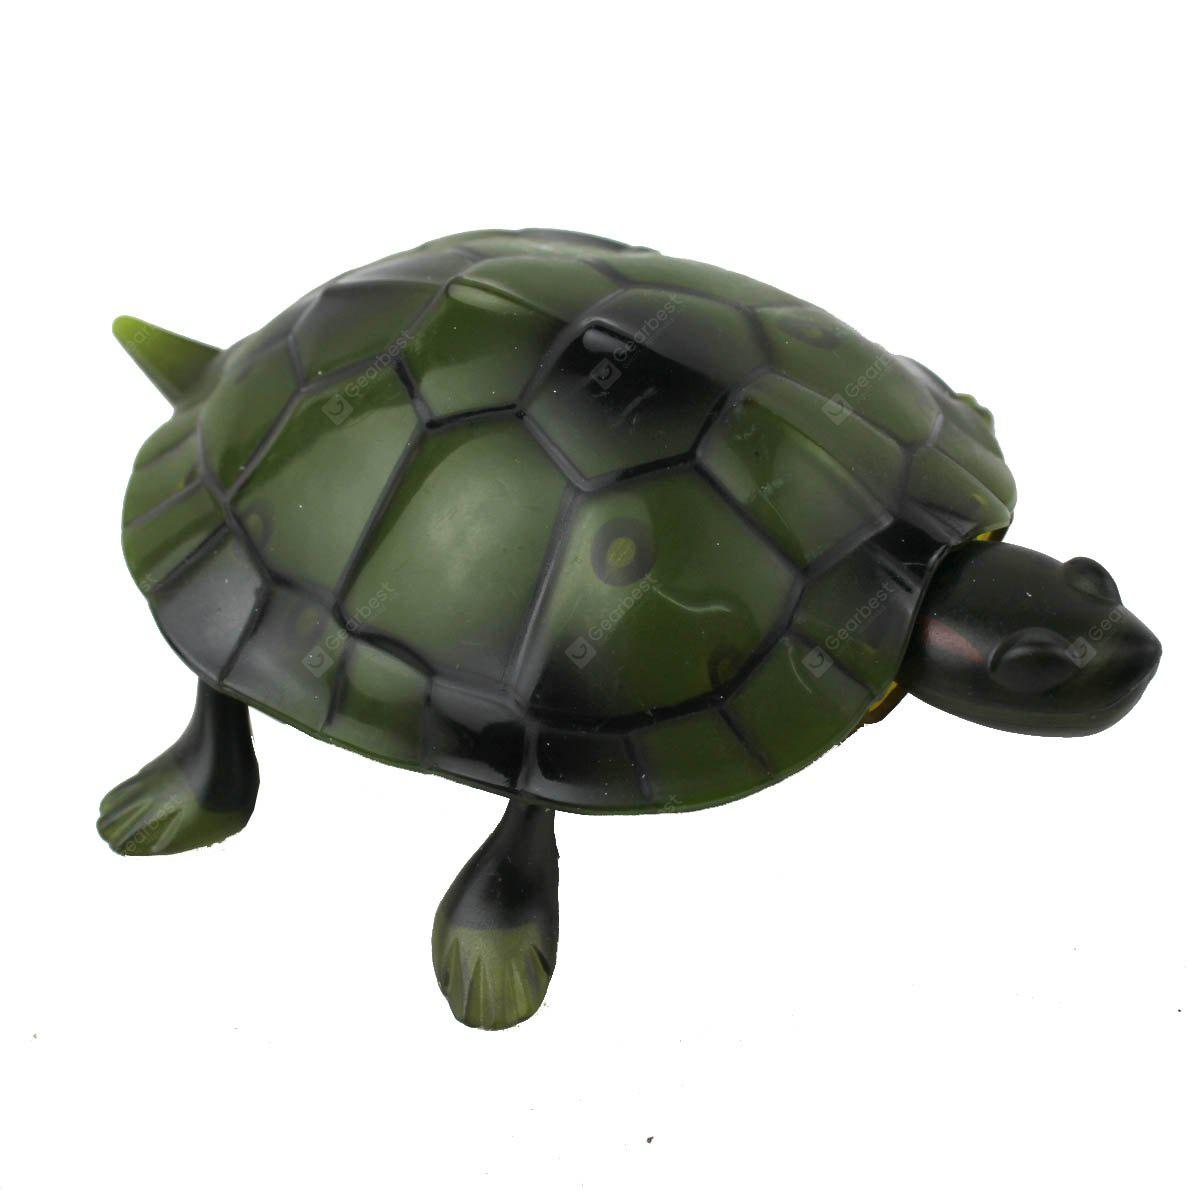 Funny InFrared RC Brazil Turtle Animal Model Toy Best